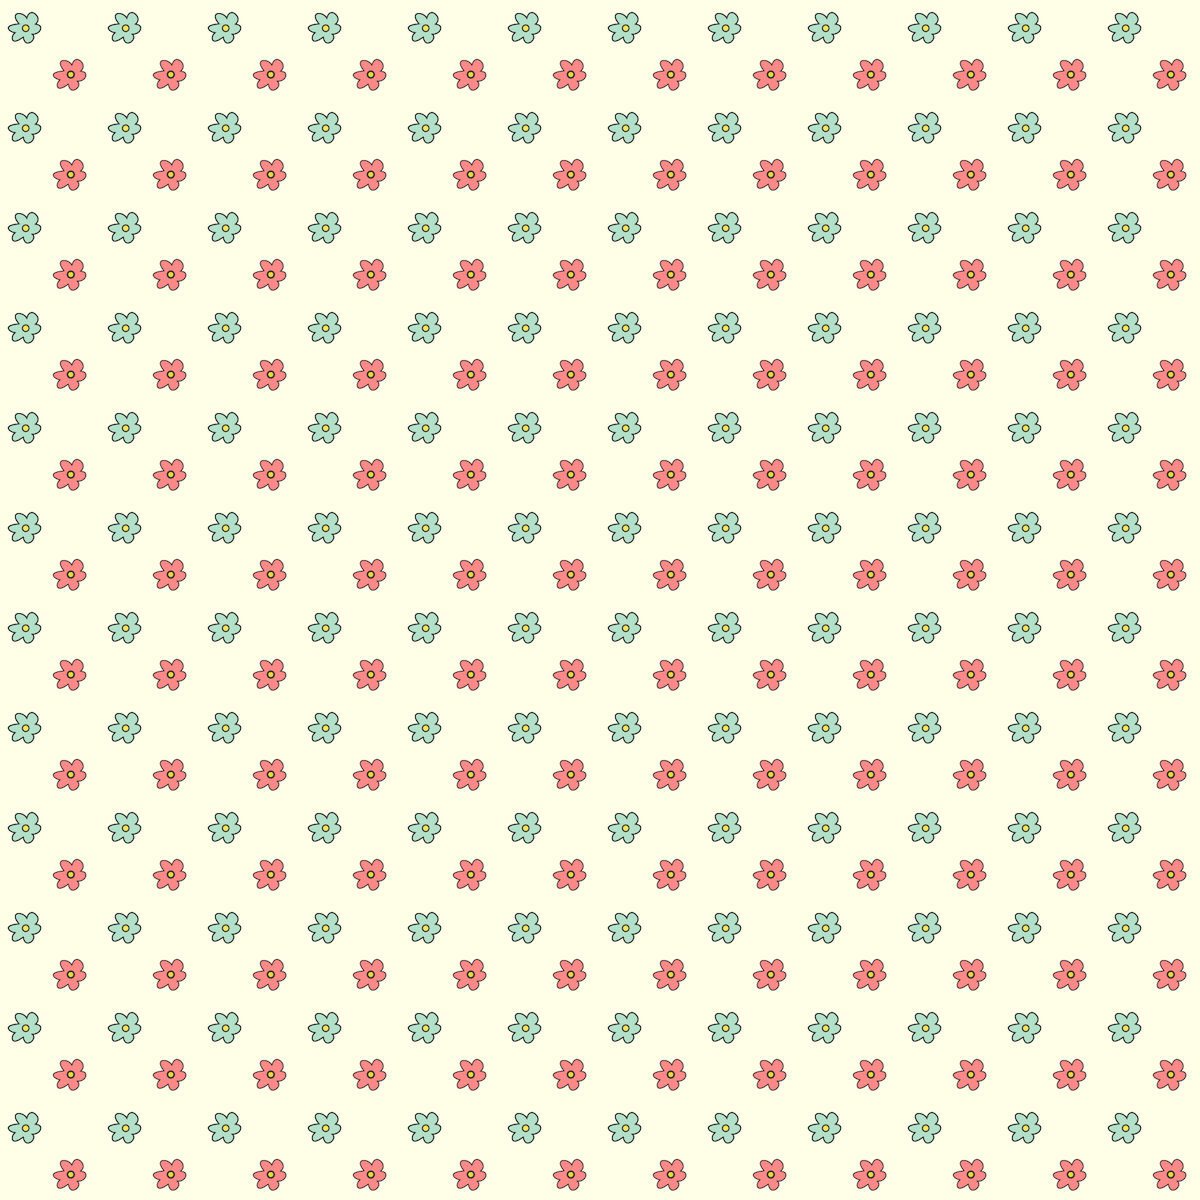 Scrapbook Paper Flower Patterns Floral scrapbooking paper